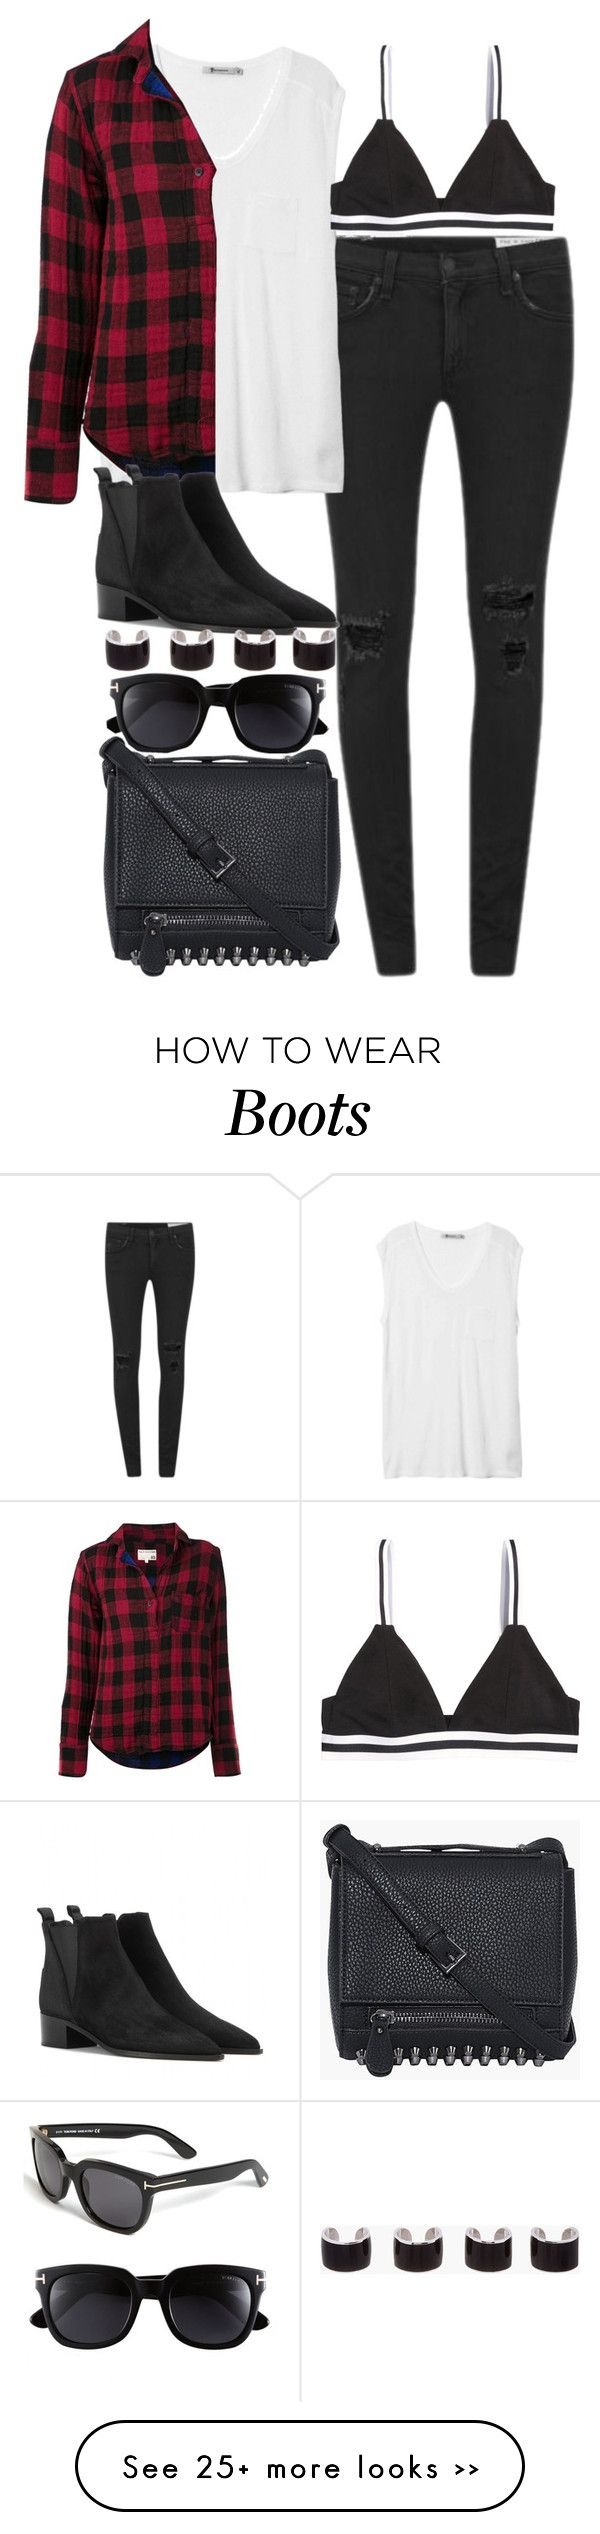 """Untitled #3092"" by plainly-marie on Polyvore"